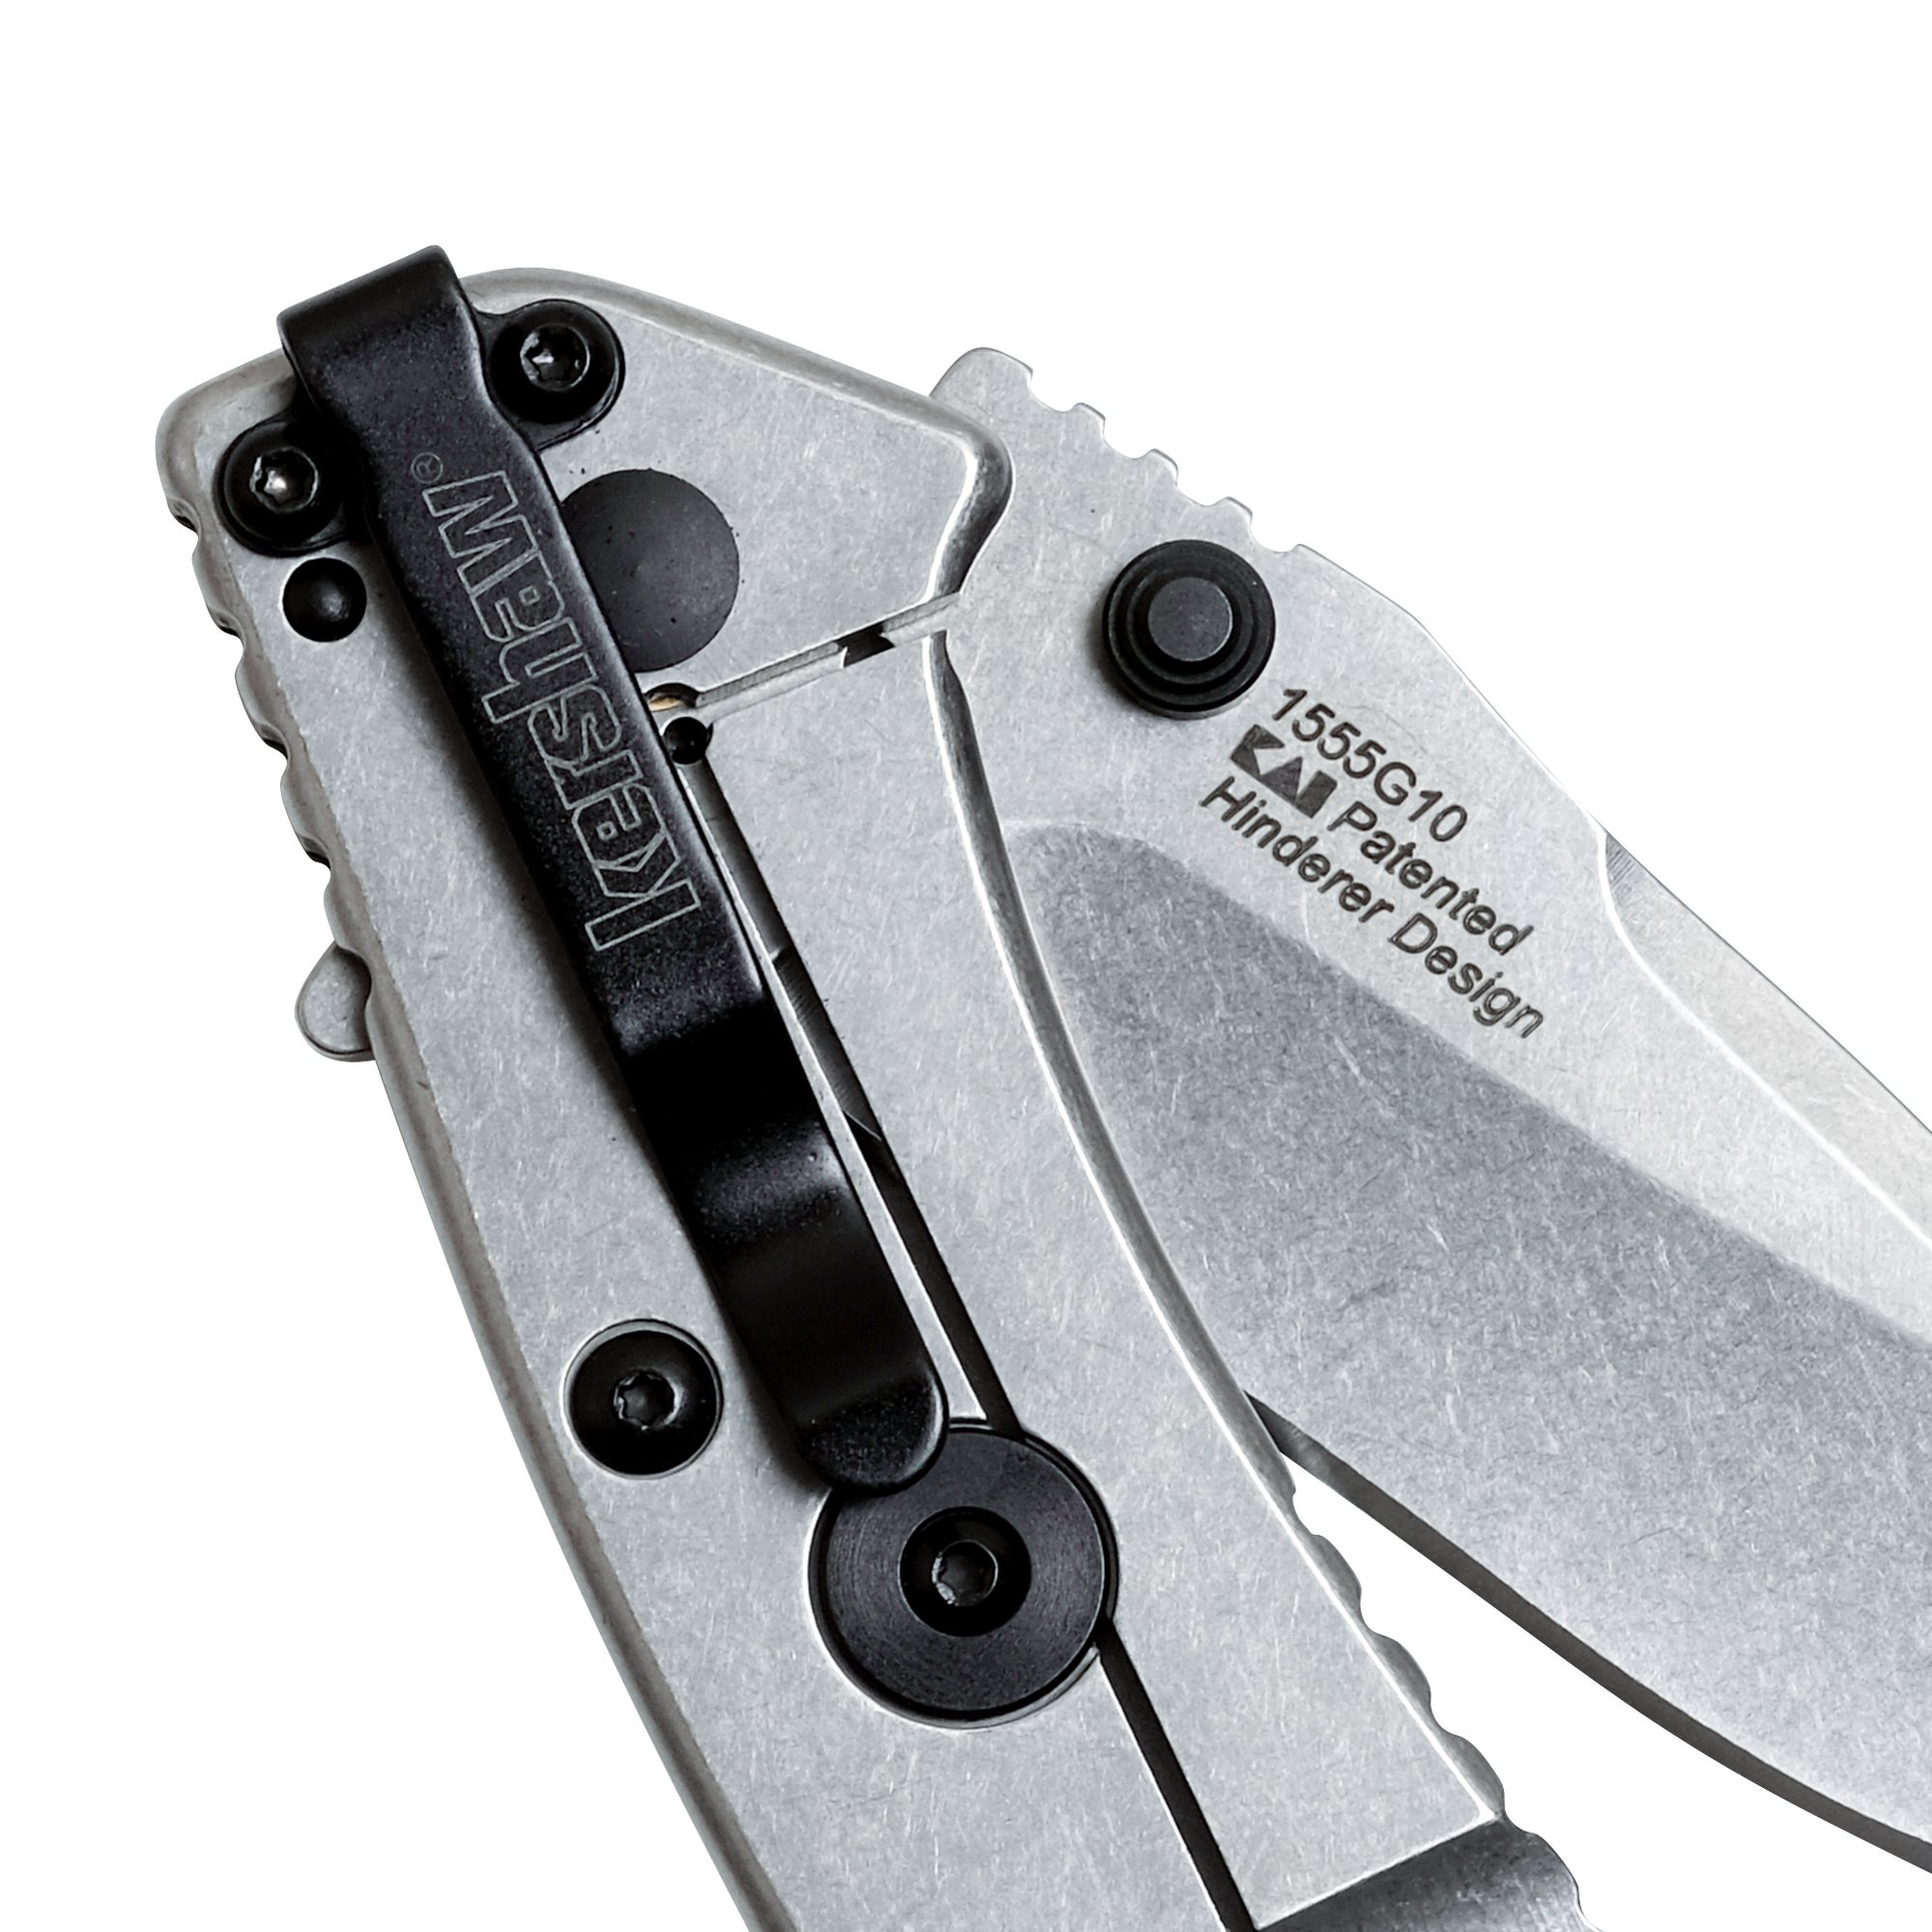 "Kershaw Cryo G-10 Pocket Knife (1555G10) 2.75"" Stonewashed Stainless Steel Blade; G-10/Stainless Steel Handle, SpeedSafe Assisted Open, 4-Position Deep-Carry Pocketclip, Frame Lock, Lock Bar"